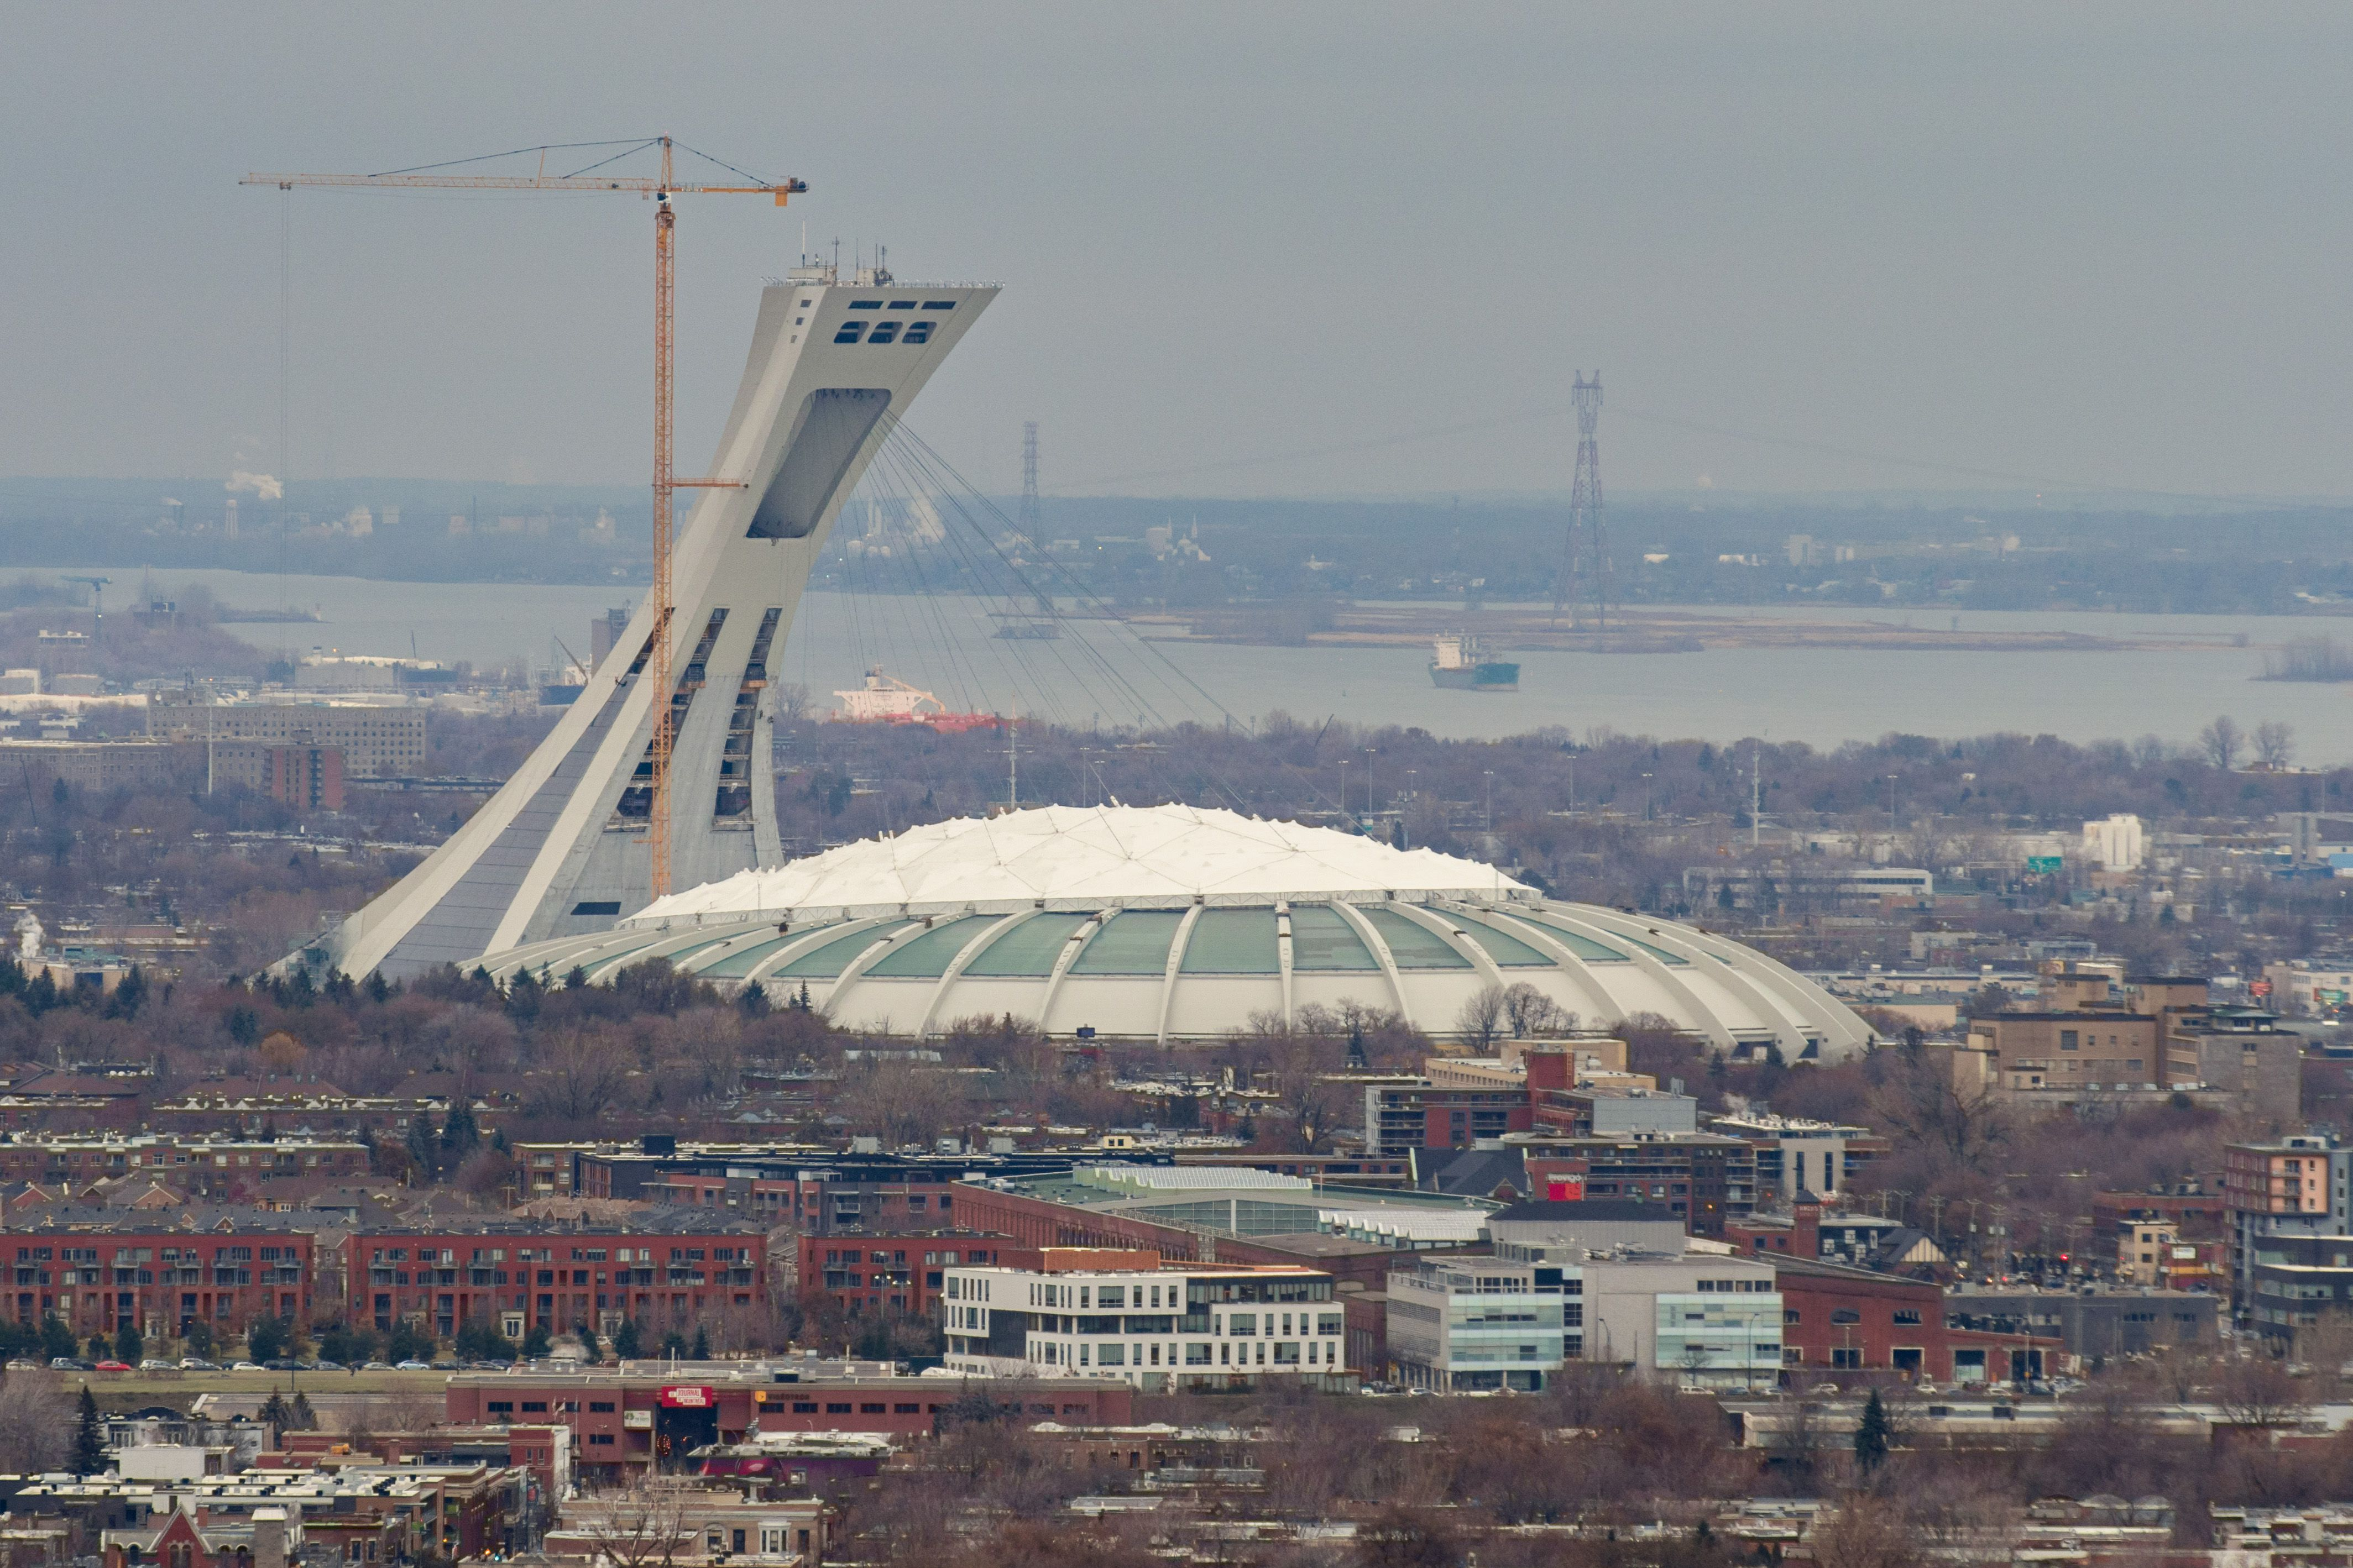 Roger Taillibert, designer of Montreal's Olympic Stadium, dead at 93